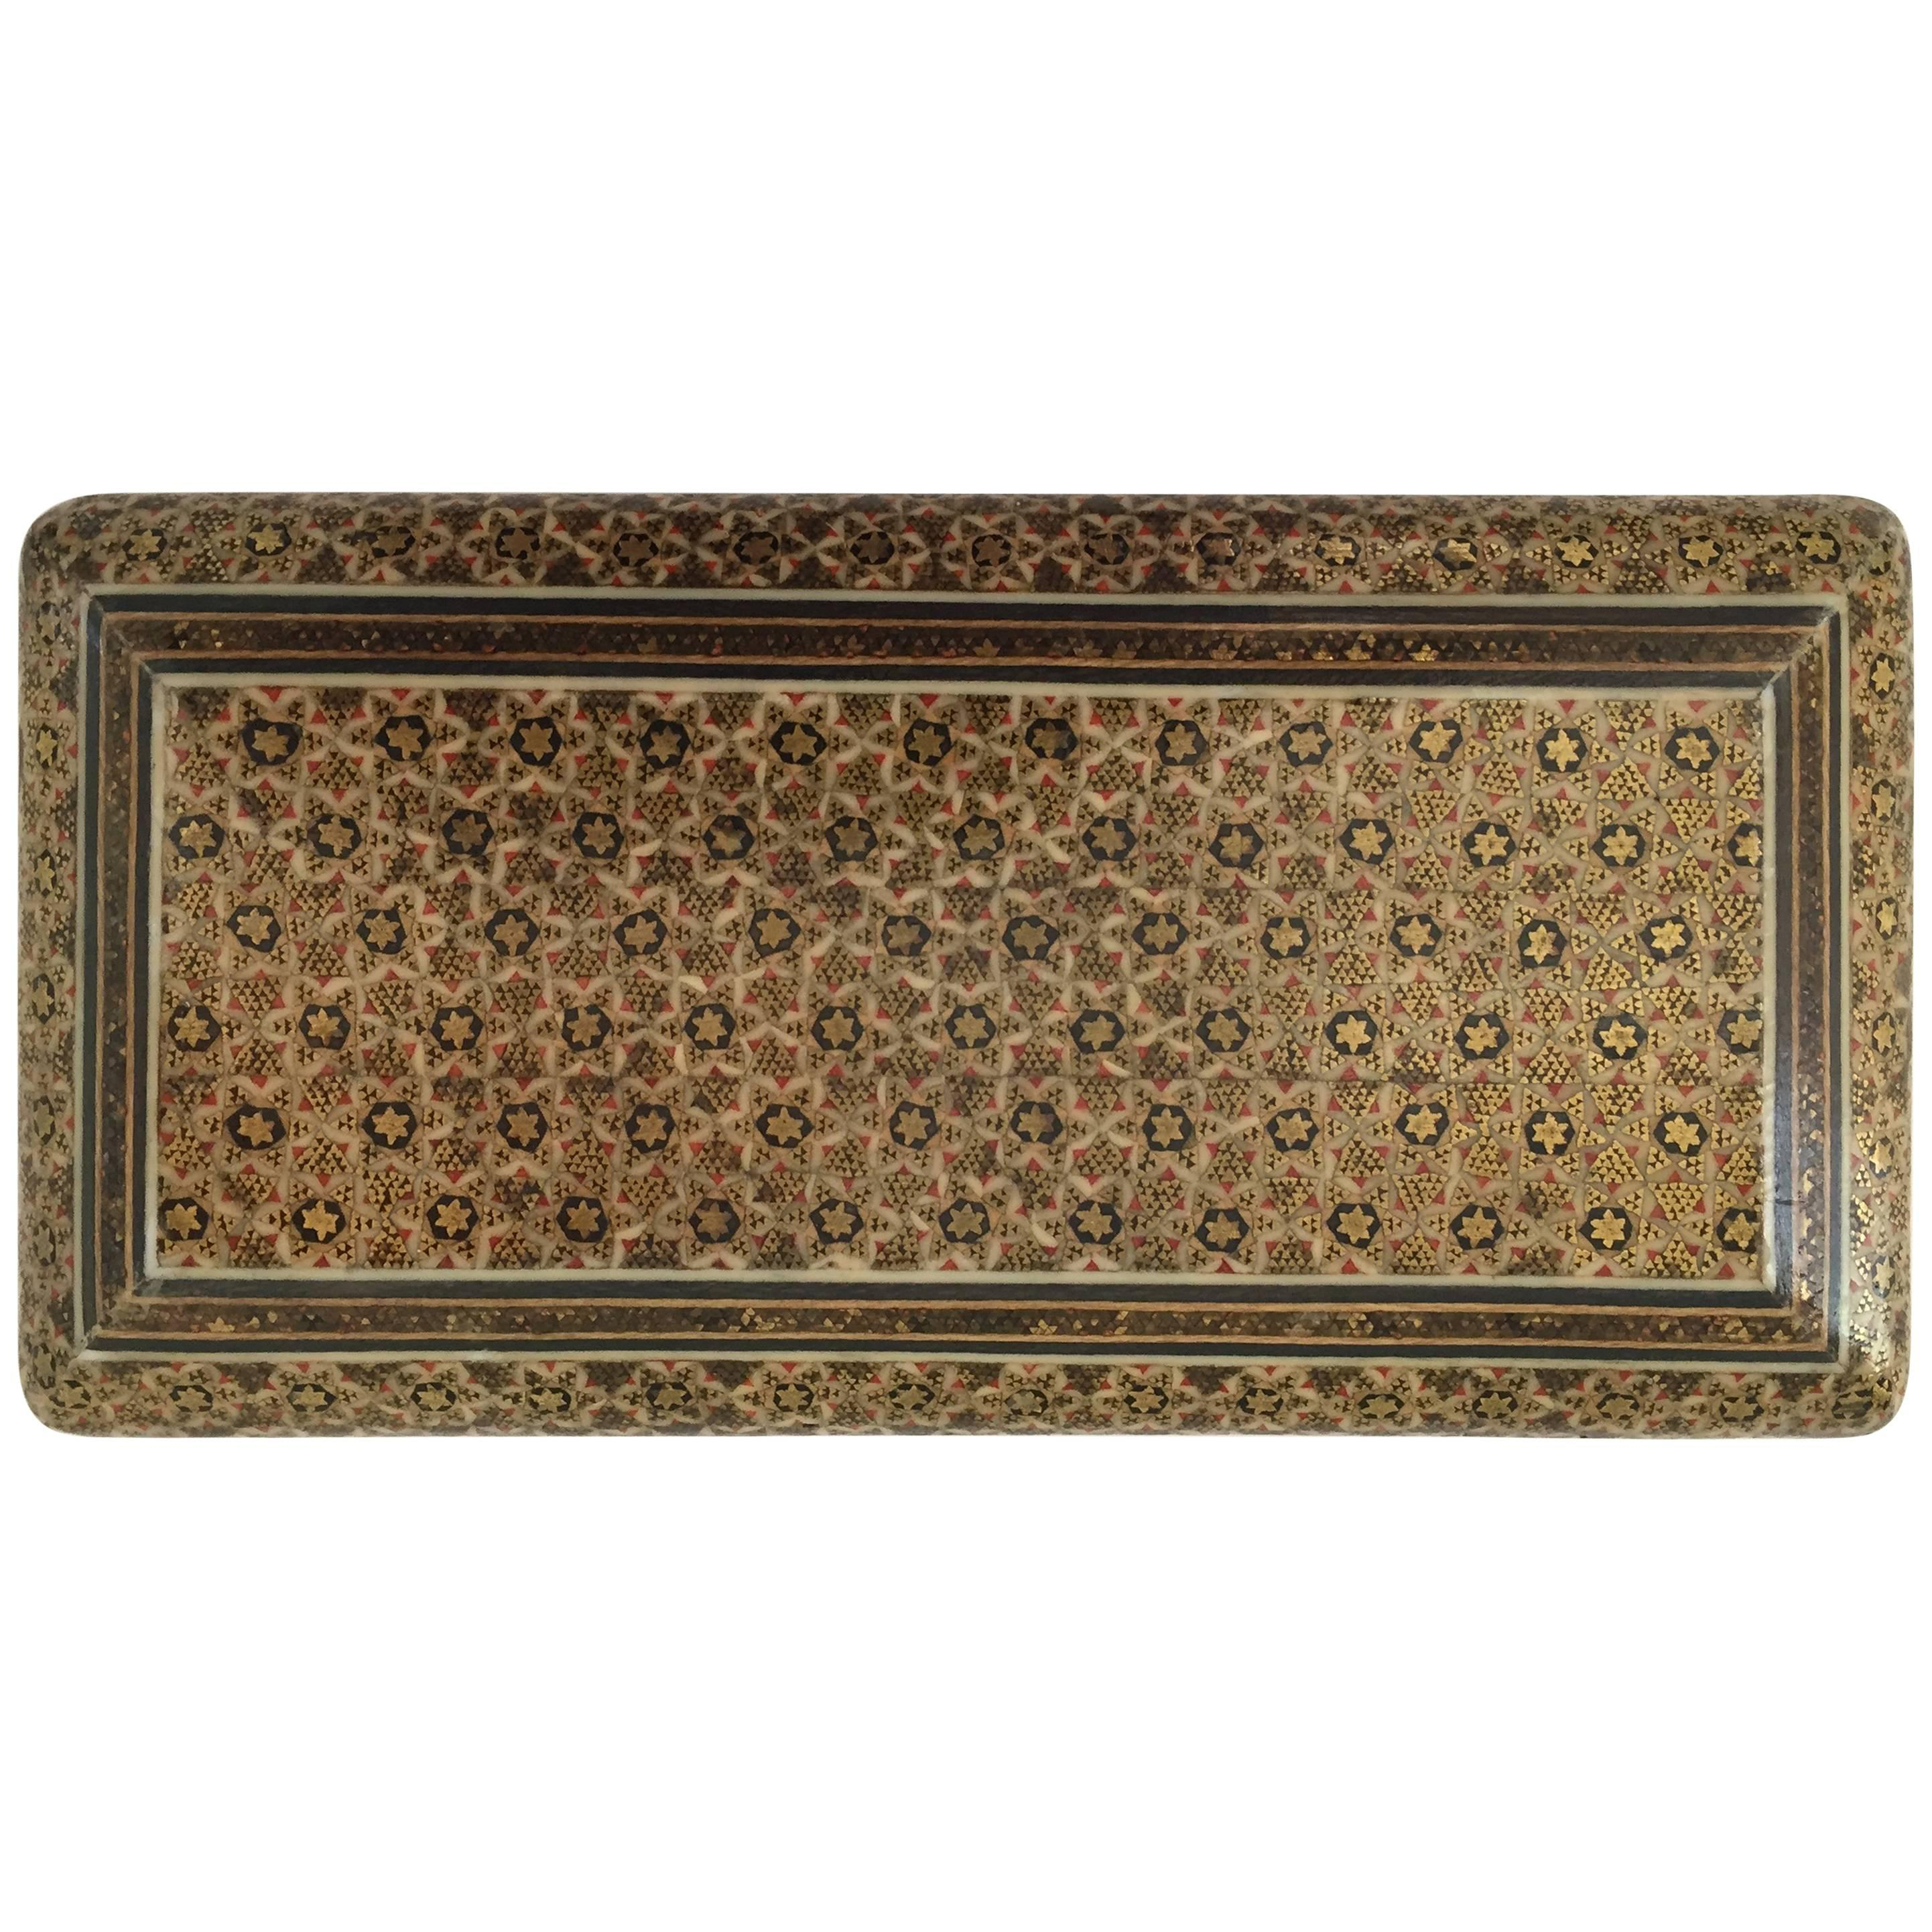 Persian Khatam Micro Mosaic Jewelry Box For Sale at 1stdibs